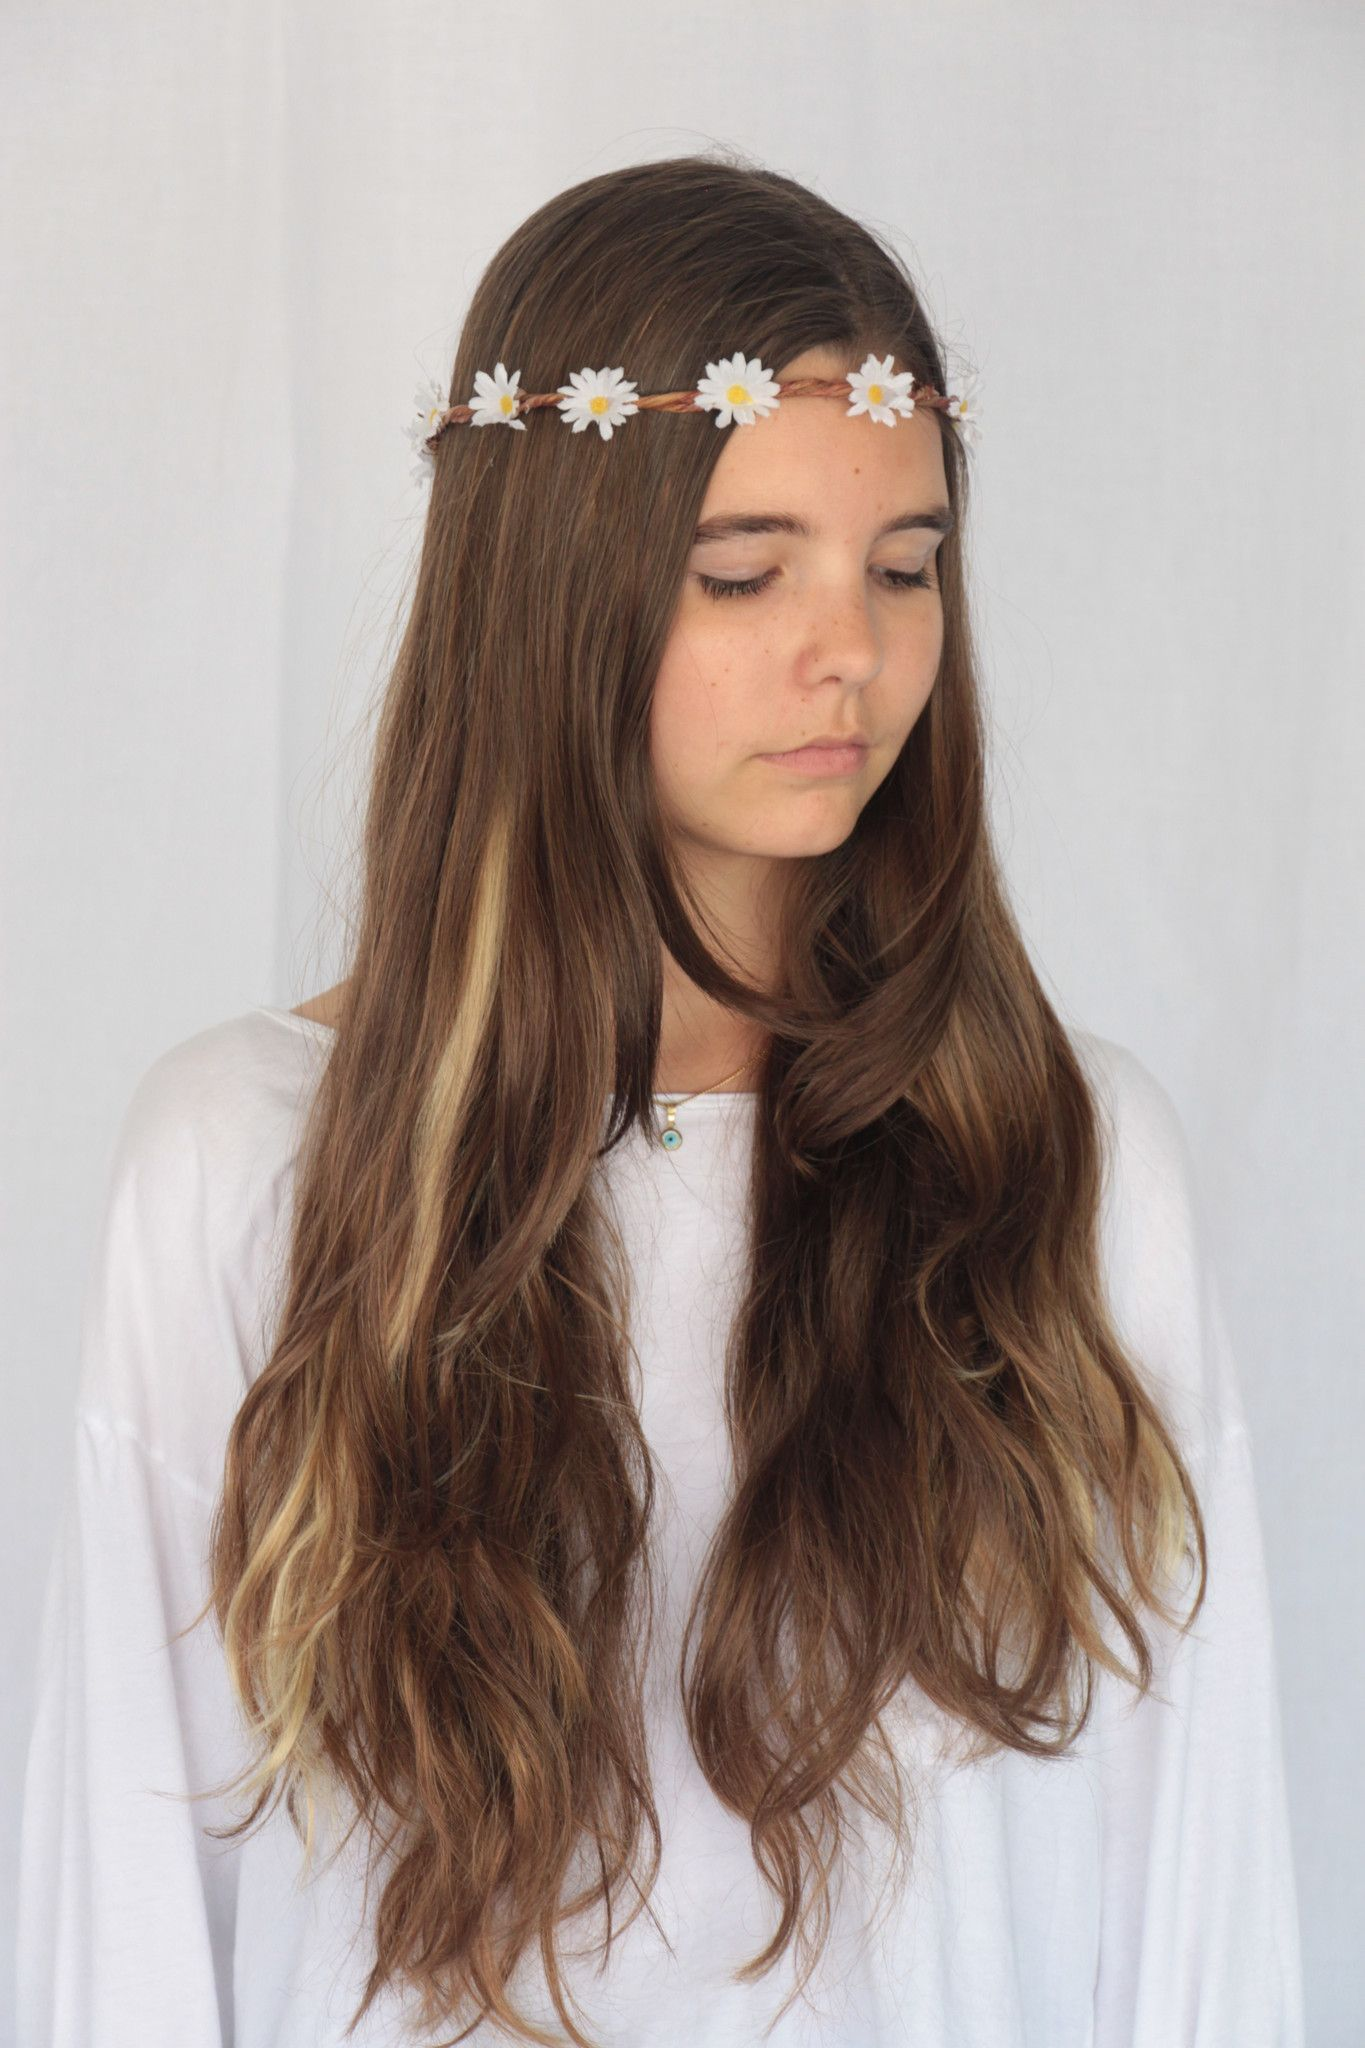 Wild Daisy Flower Crown Hairmake Upbeauty And Nails Pinterest